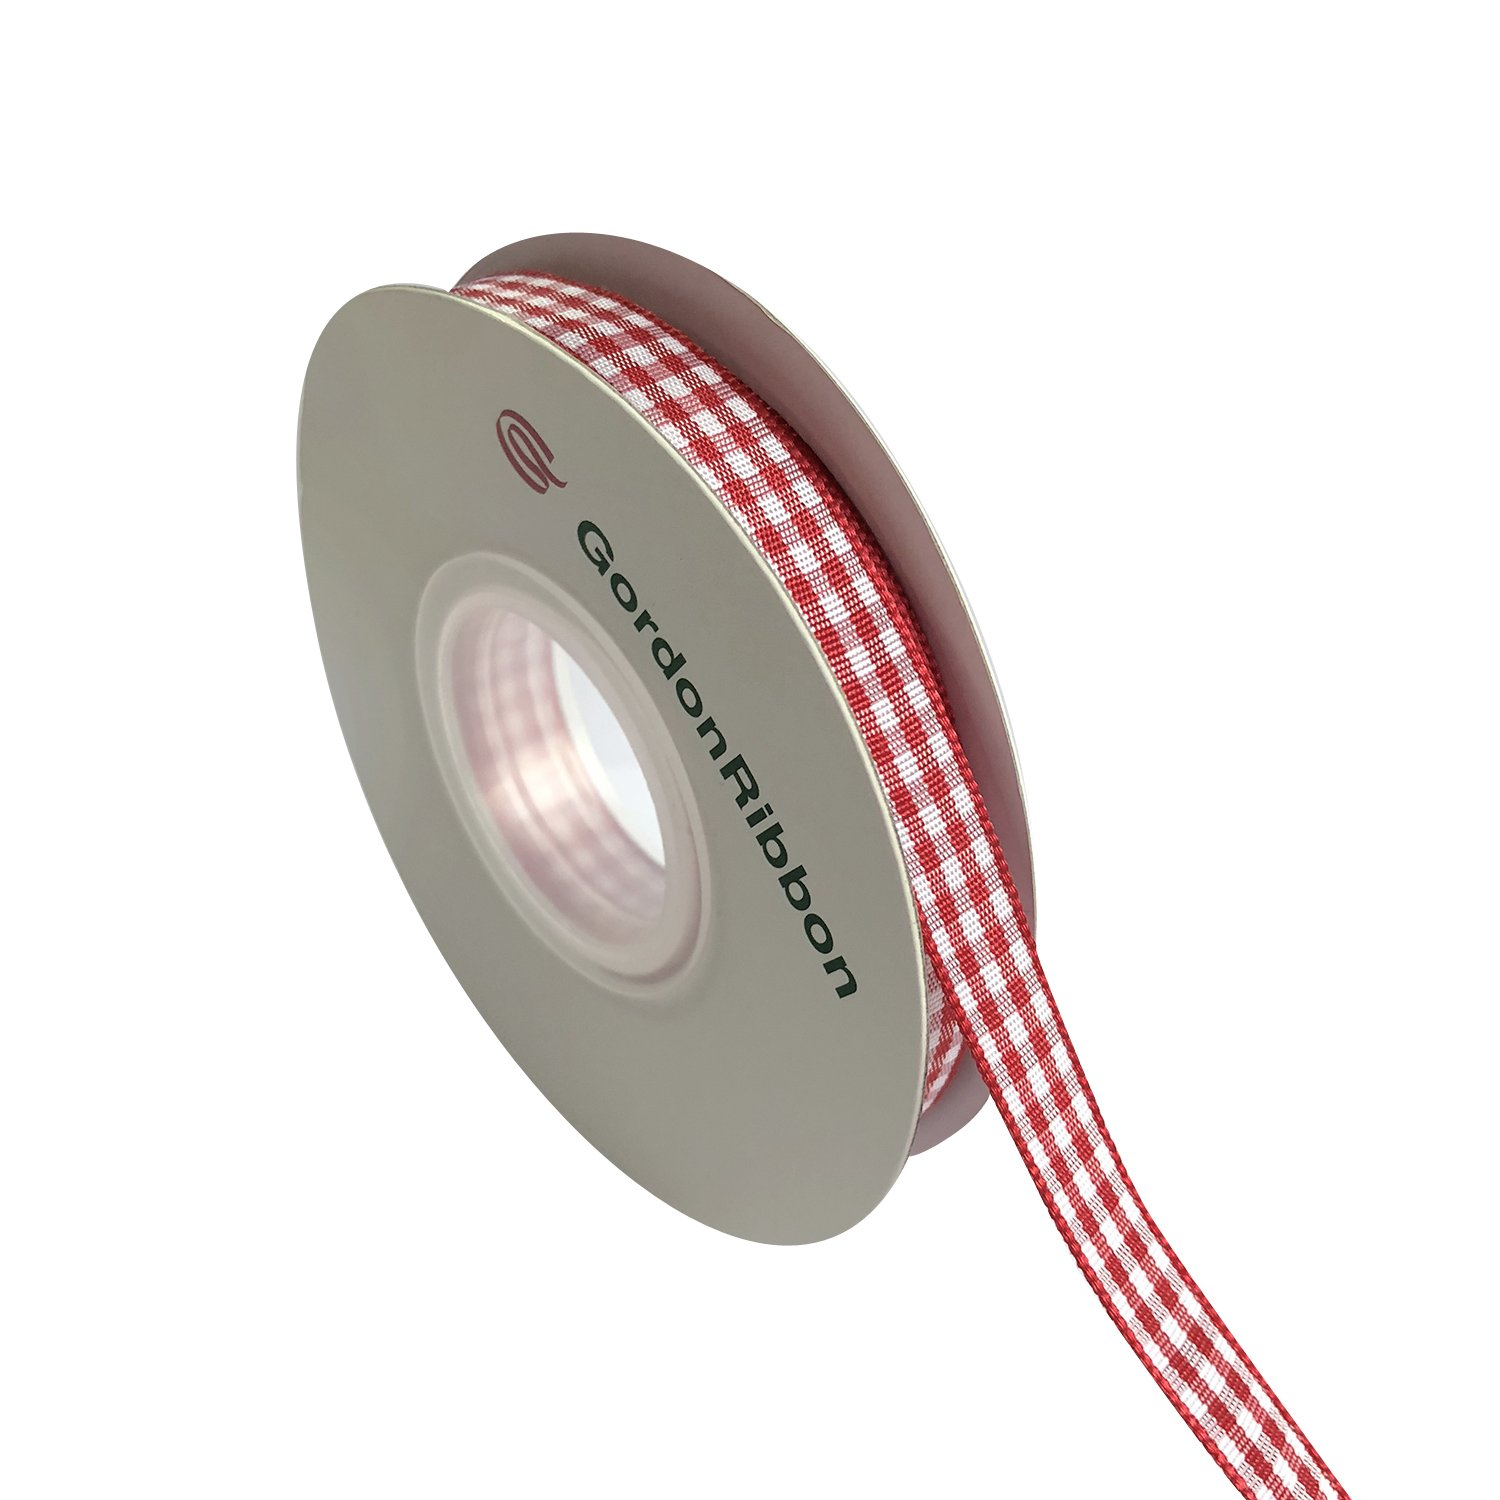 Red Gingham Woven Edge Ribbon, Checkered Craft, 25 Yards Long per Spool, 3/8 inch Wide GordonRibbon 4336858083